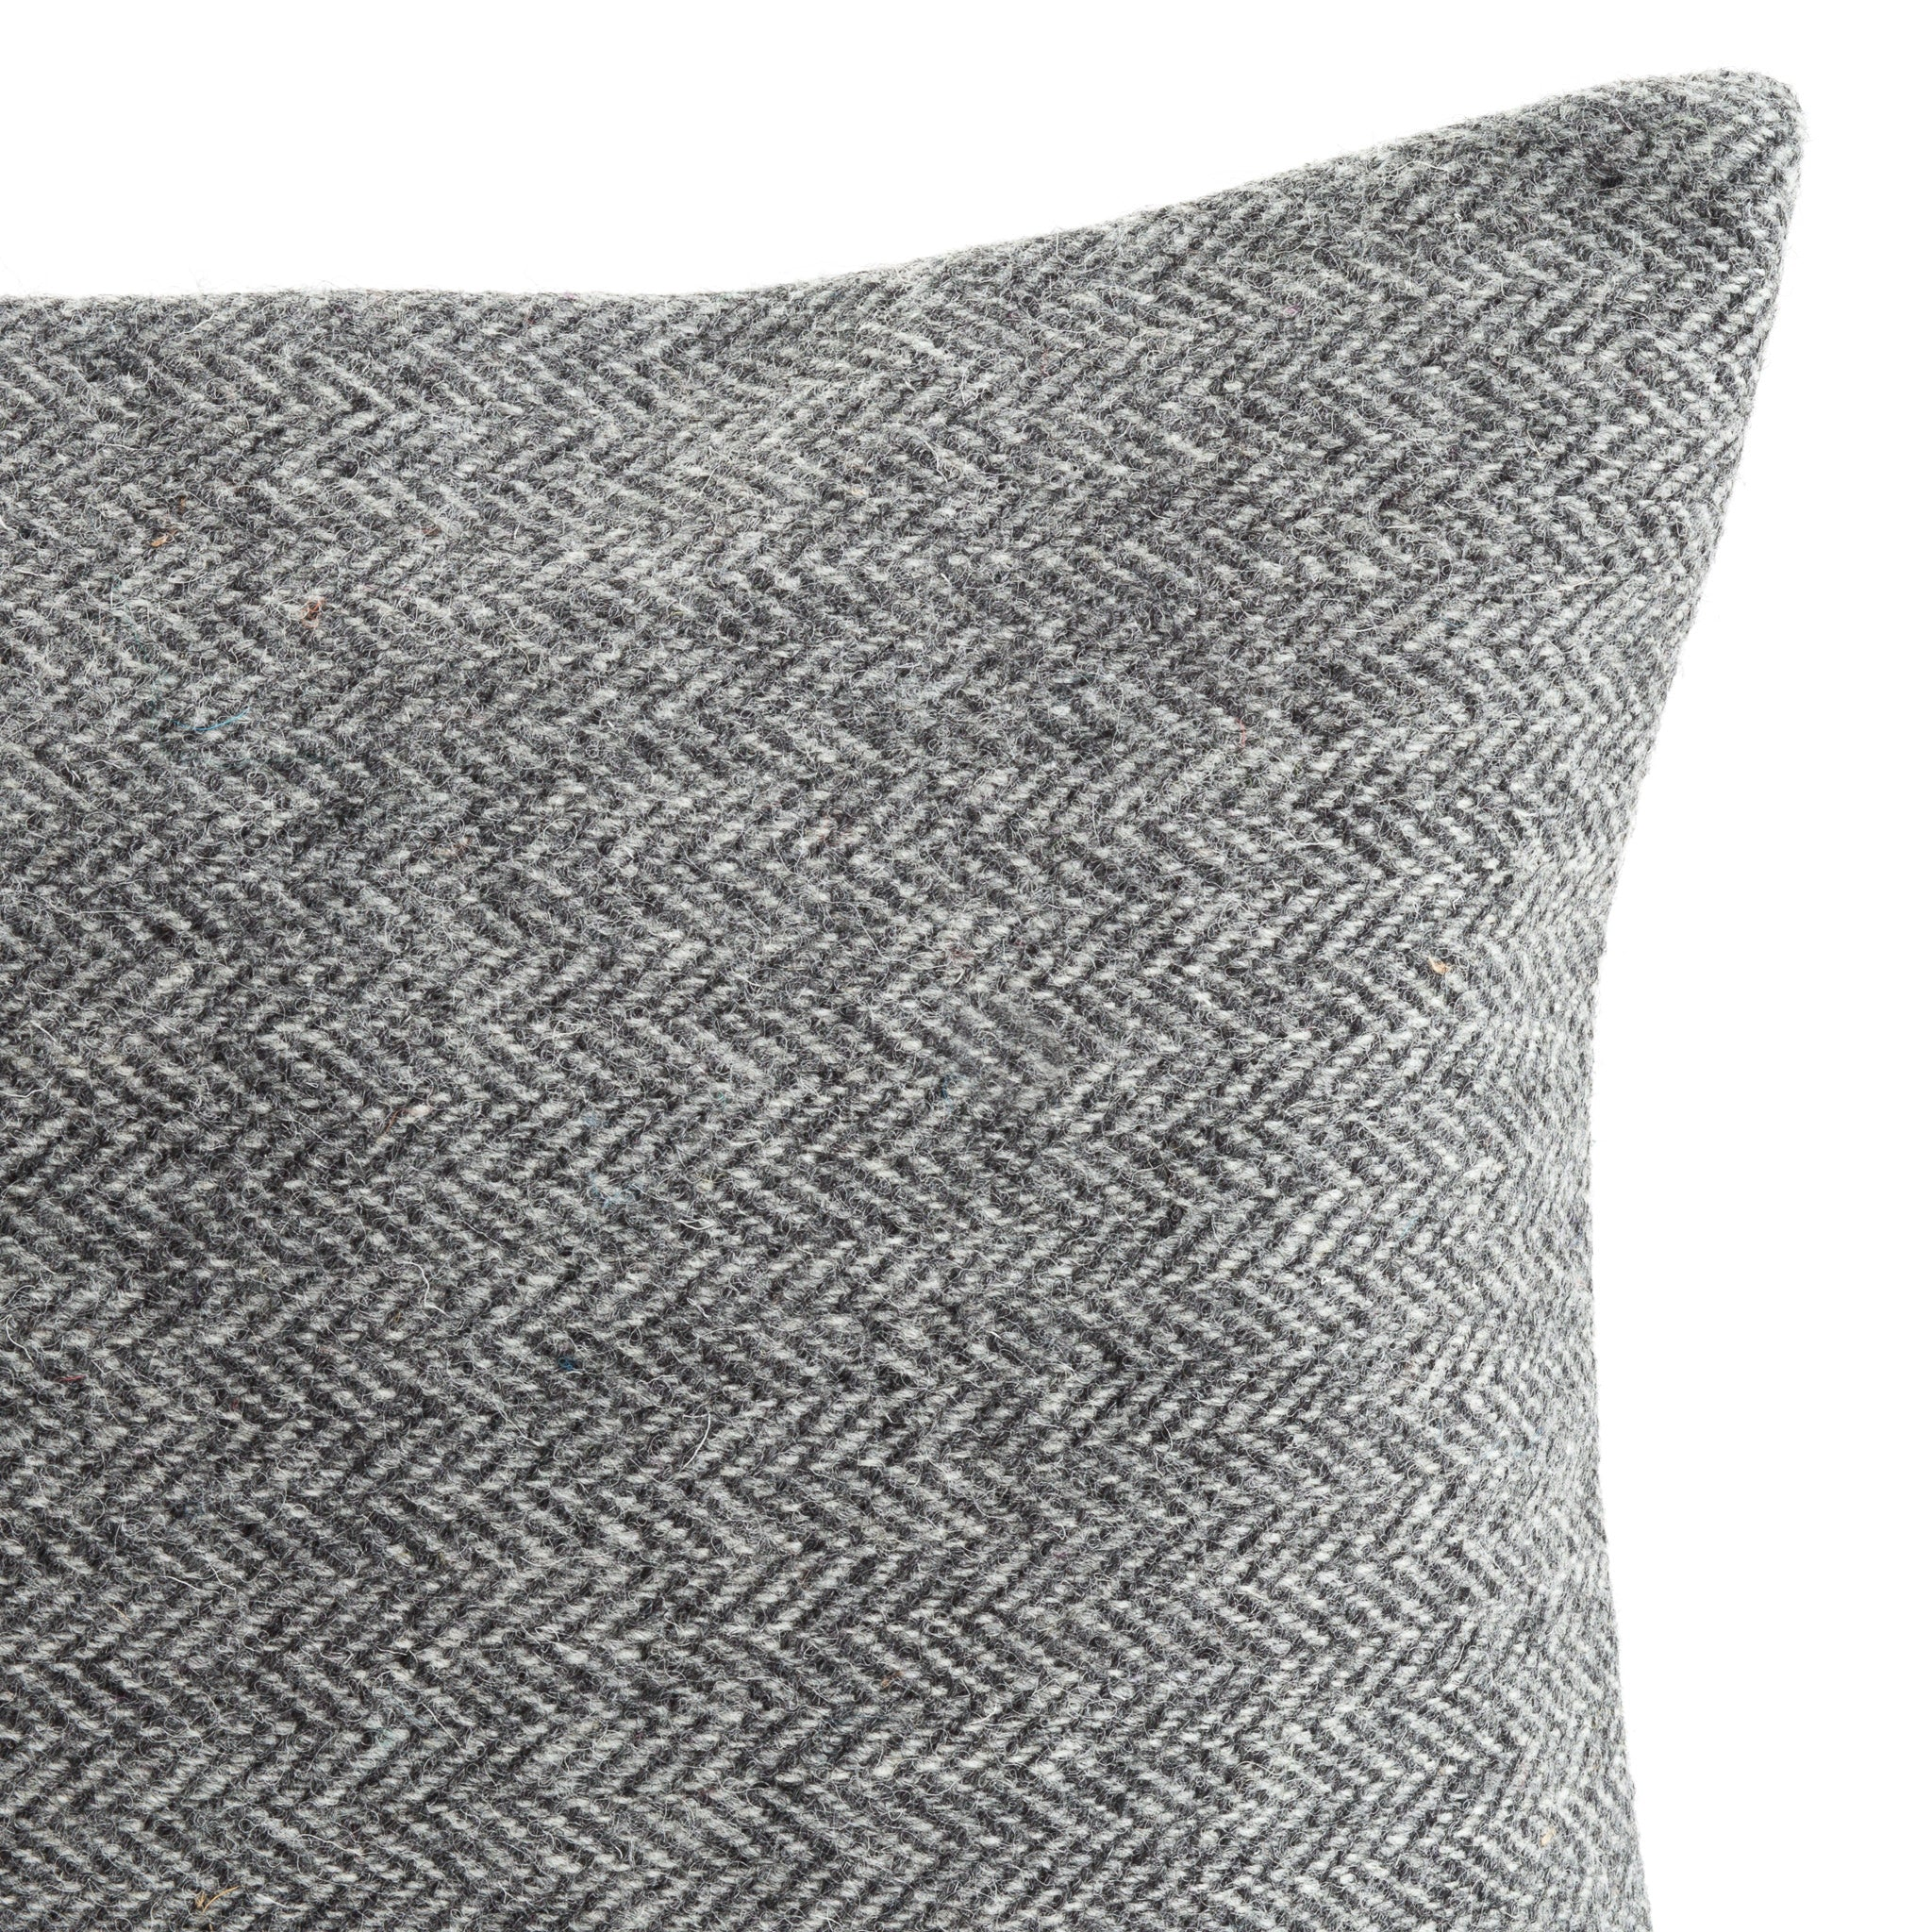 Harris Tweed/Pure Wool/Outer Hebrides/Scatter/Cushion/Grey/Herringbone/Detail/